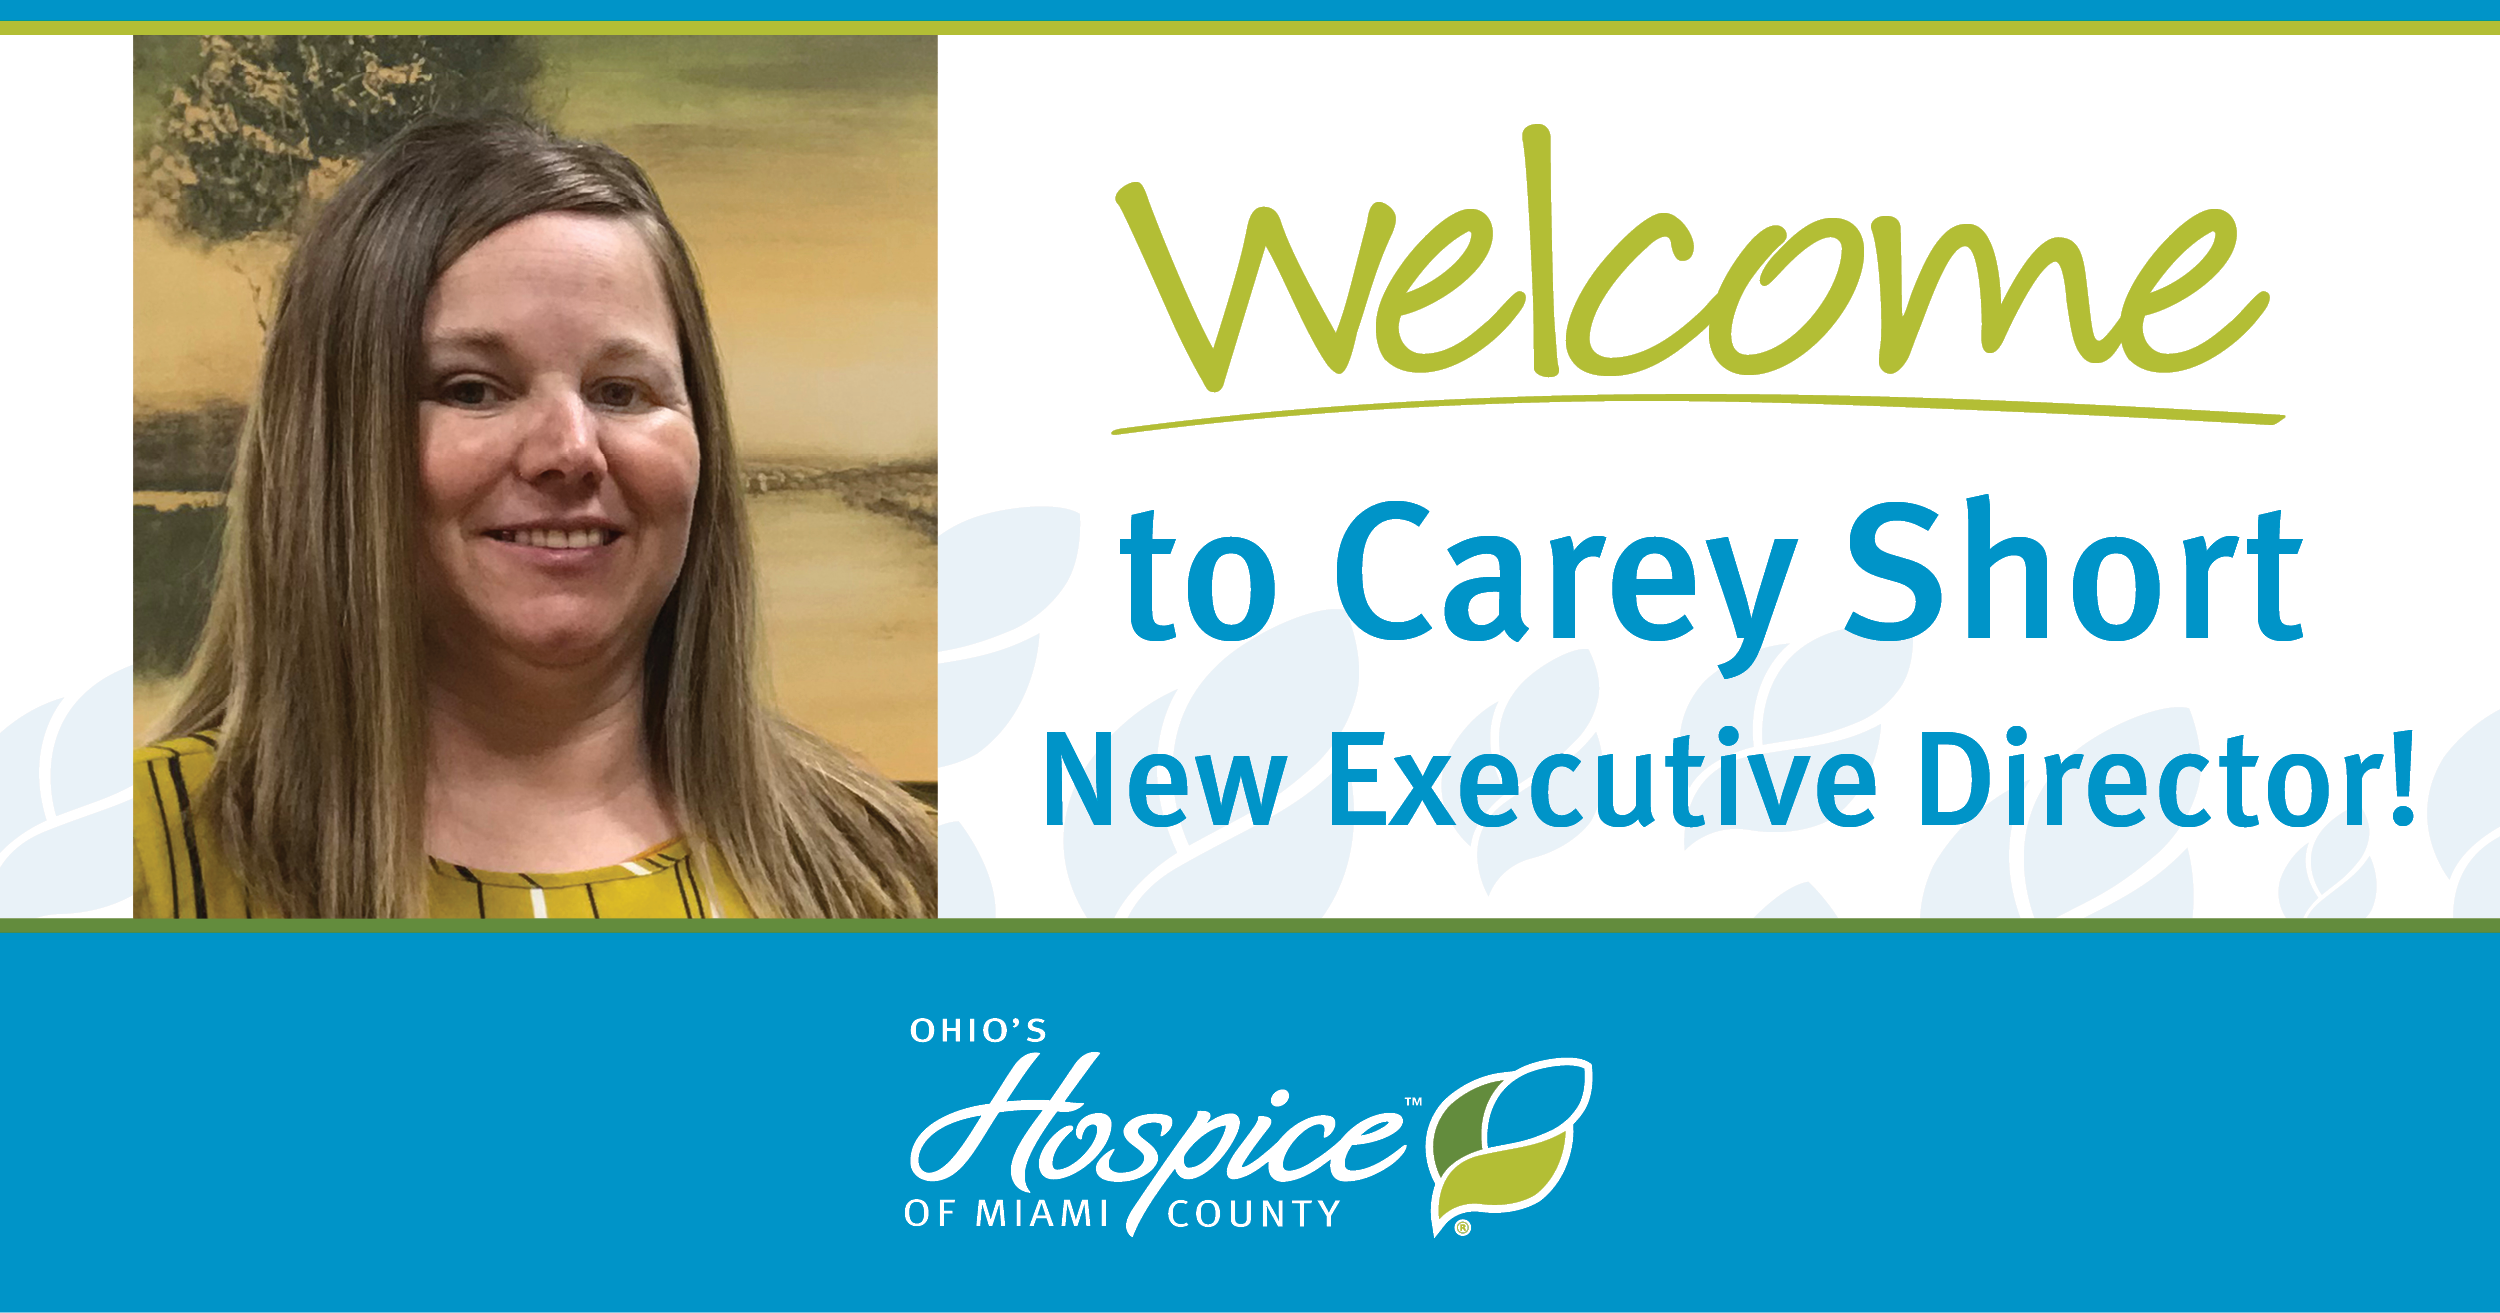 Carey Short Named Executive Director Of Ohio's Hospice Of Miami County